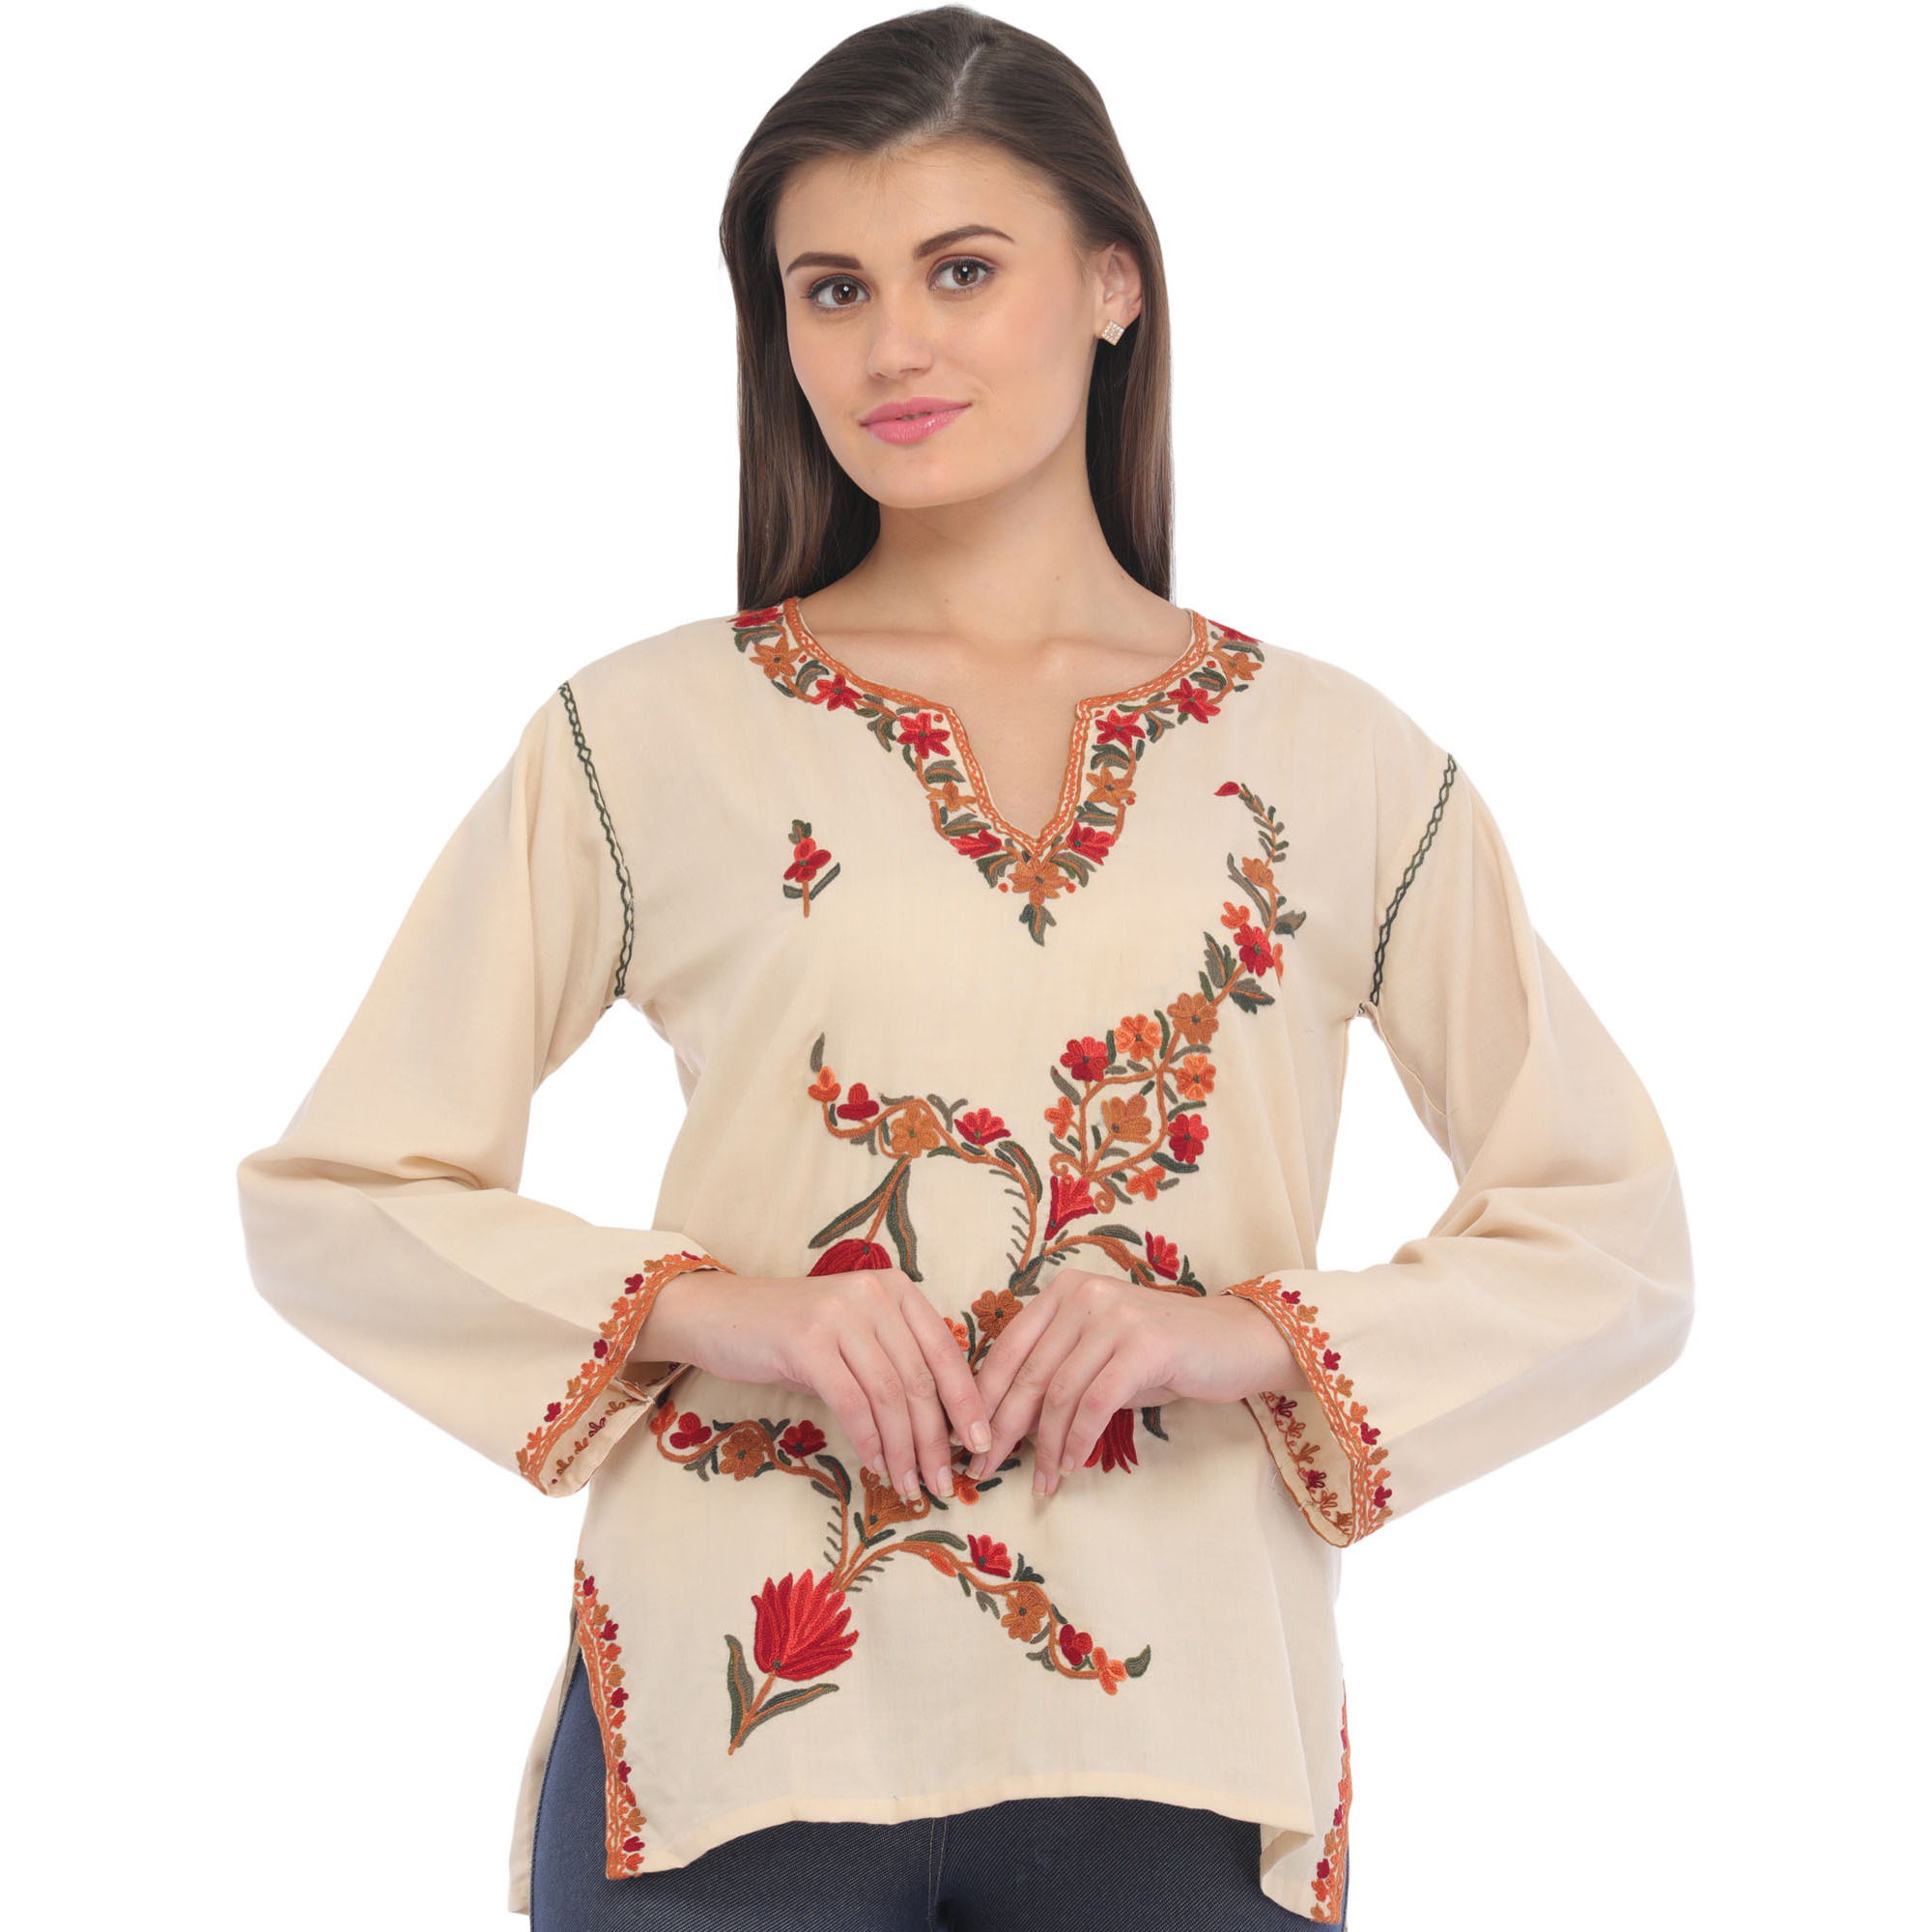 White-Smoke Short Kurti from Kashmir with Ari Hand-Embroidery